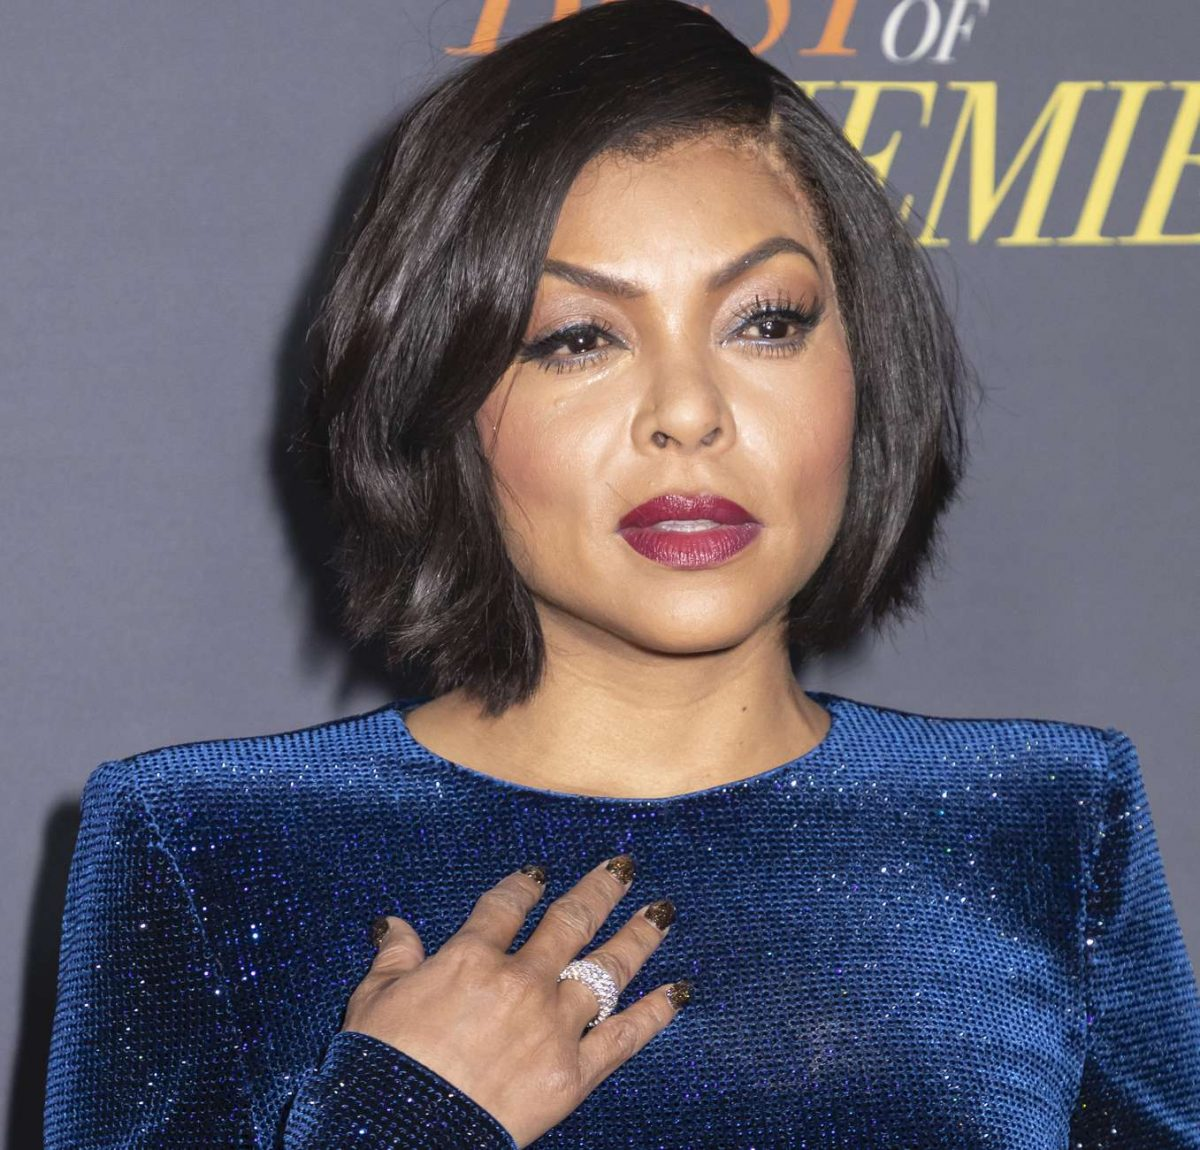 Taraji P Henson Talks Therapy, Feeling Helpless